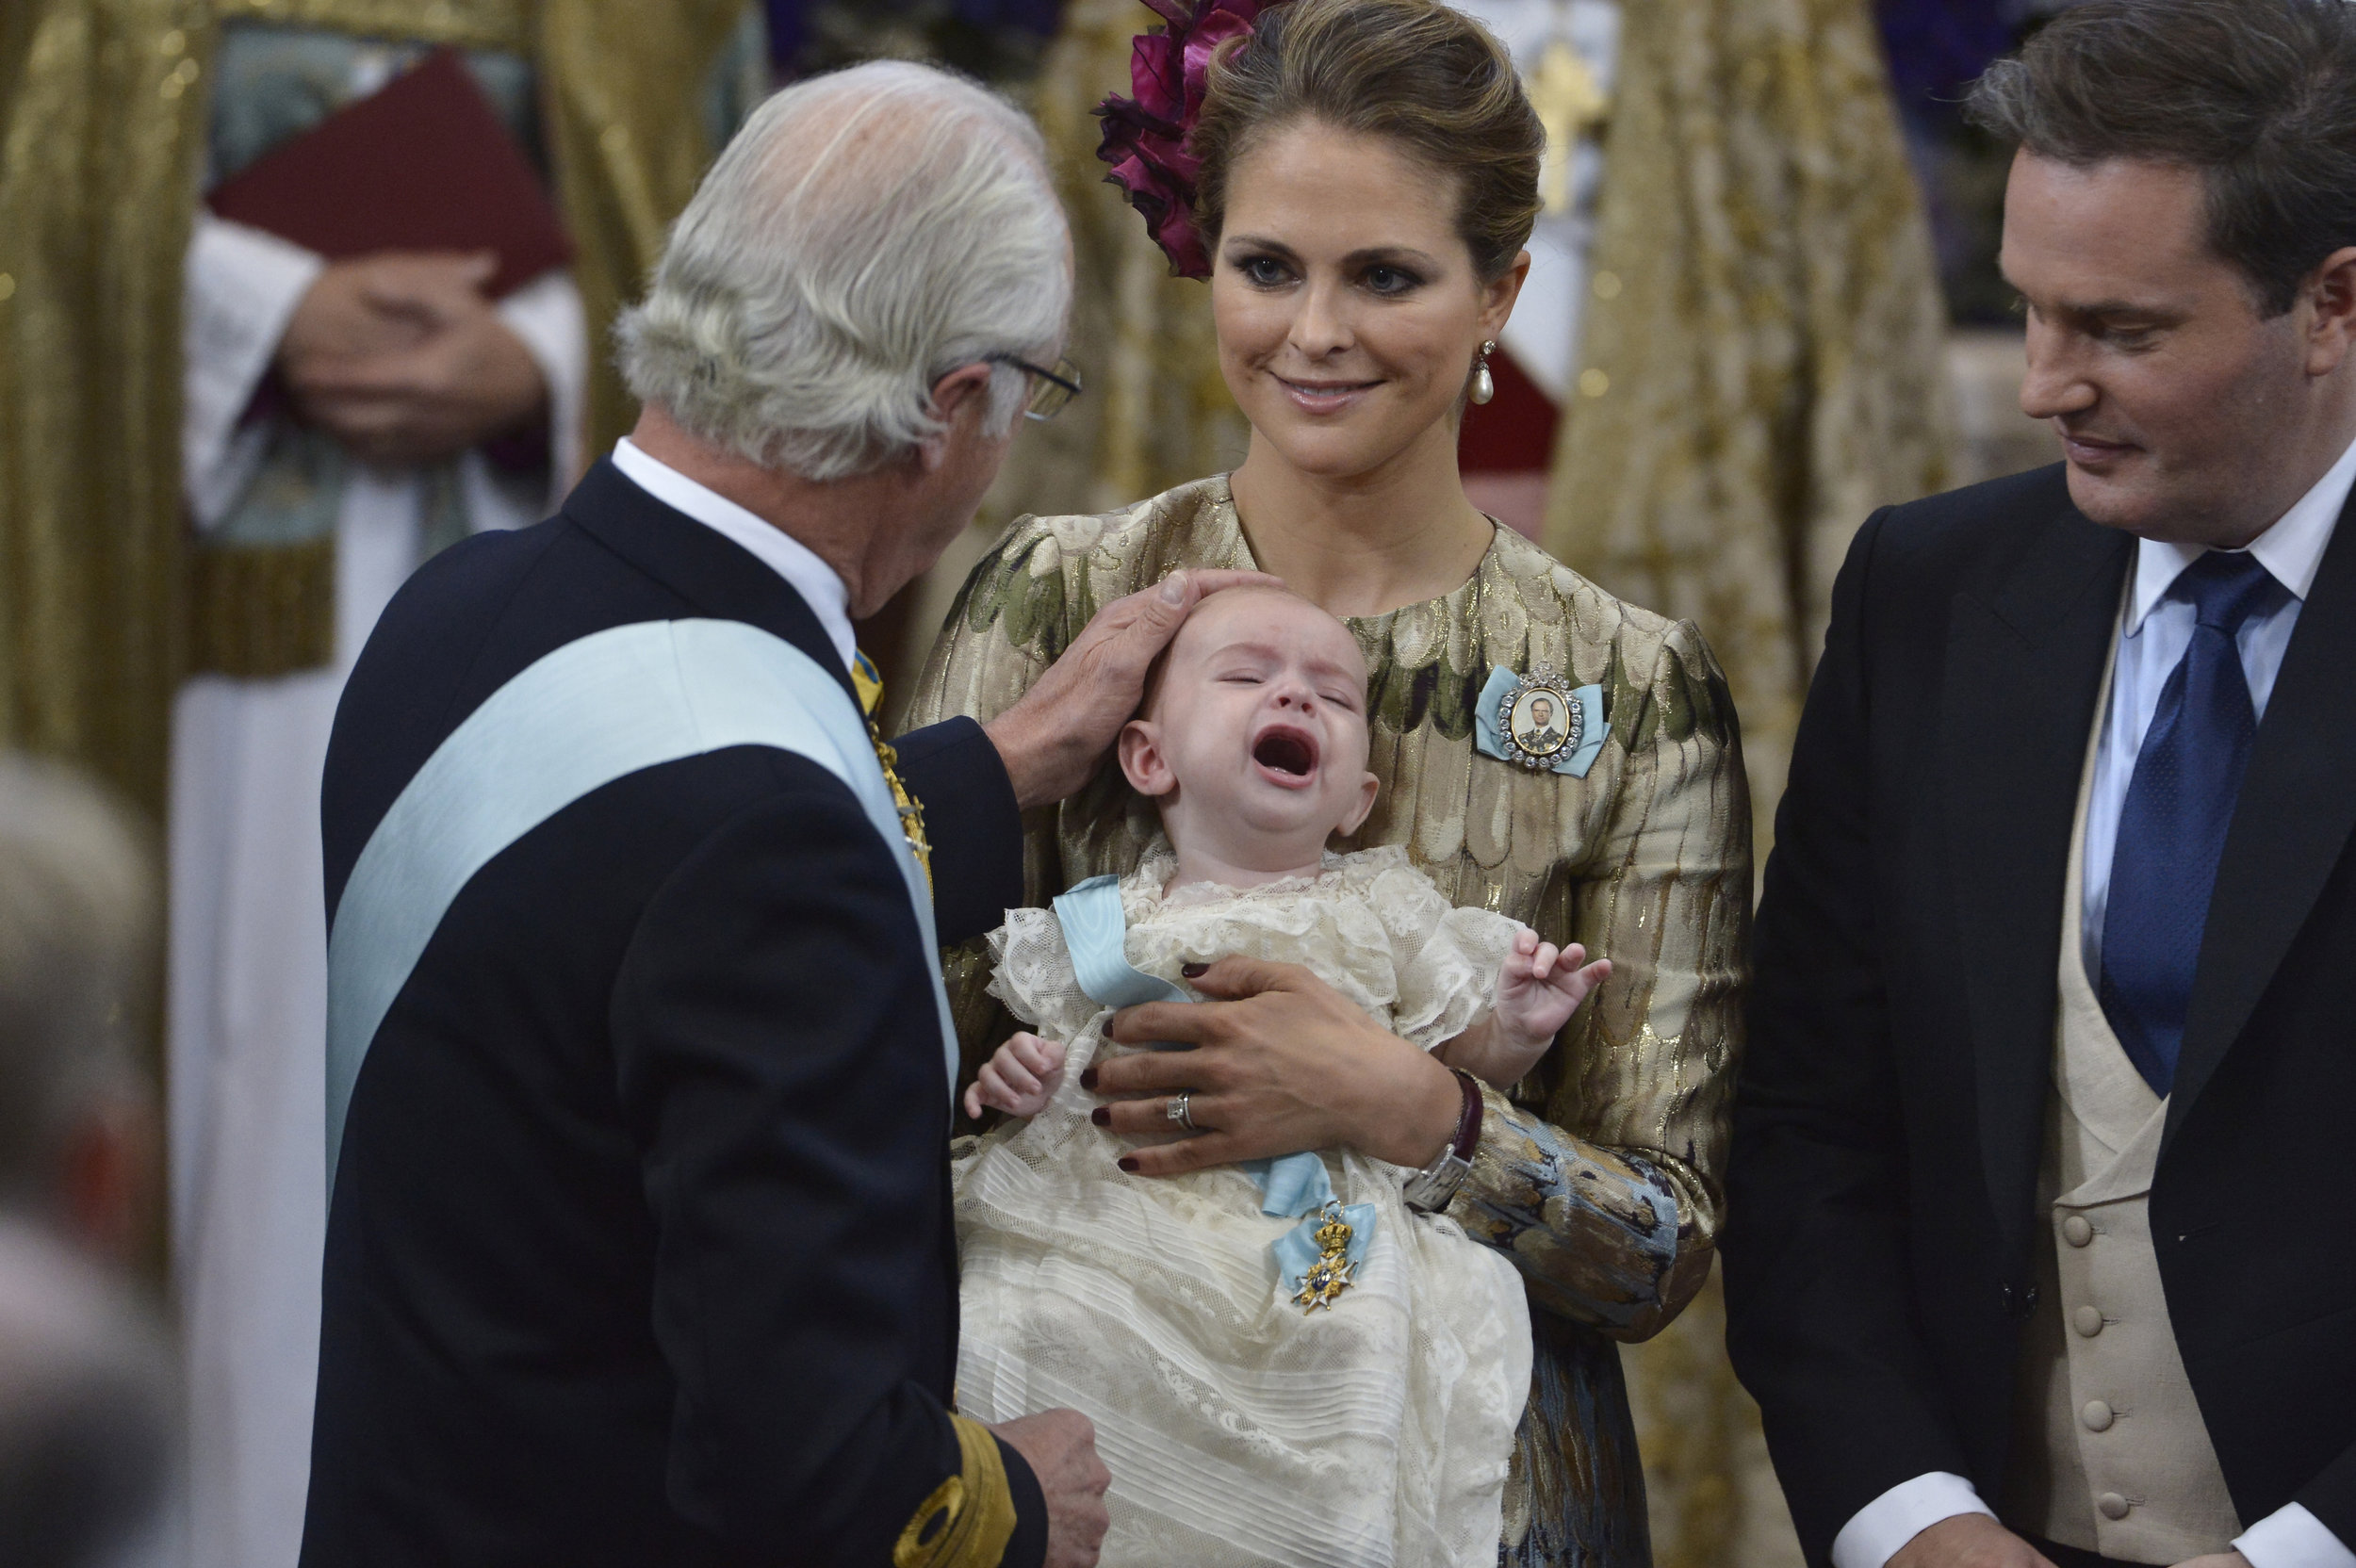 H.R.H Prince Nicolas christening in Drottningholm Palace Chapel, October 11, 2015. Photo: Jonas Ekströmer, TT